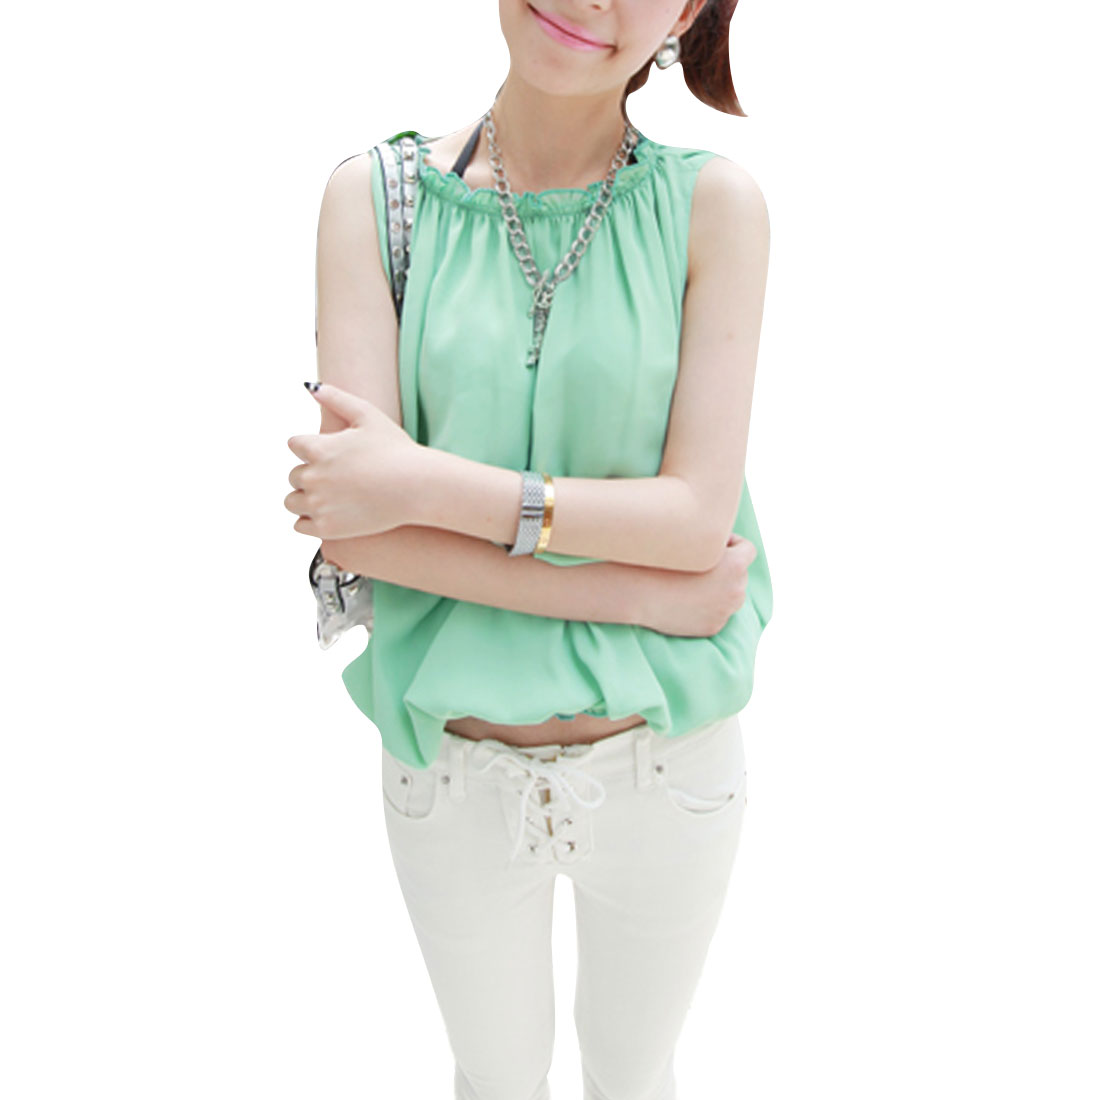 Women Softness Chiffon Self Tie String Casual Shirt Light Green S